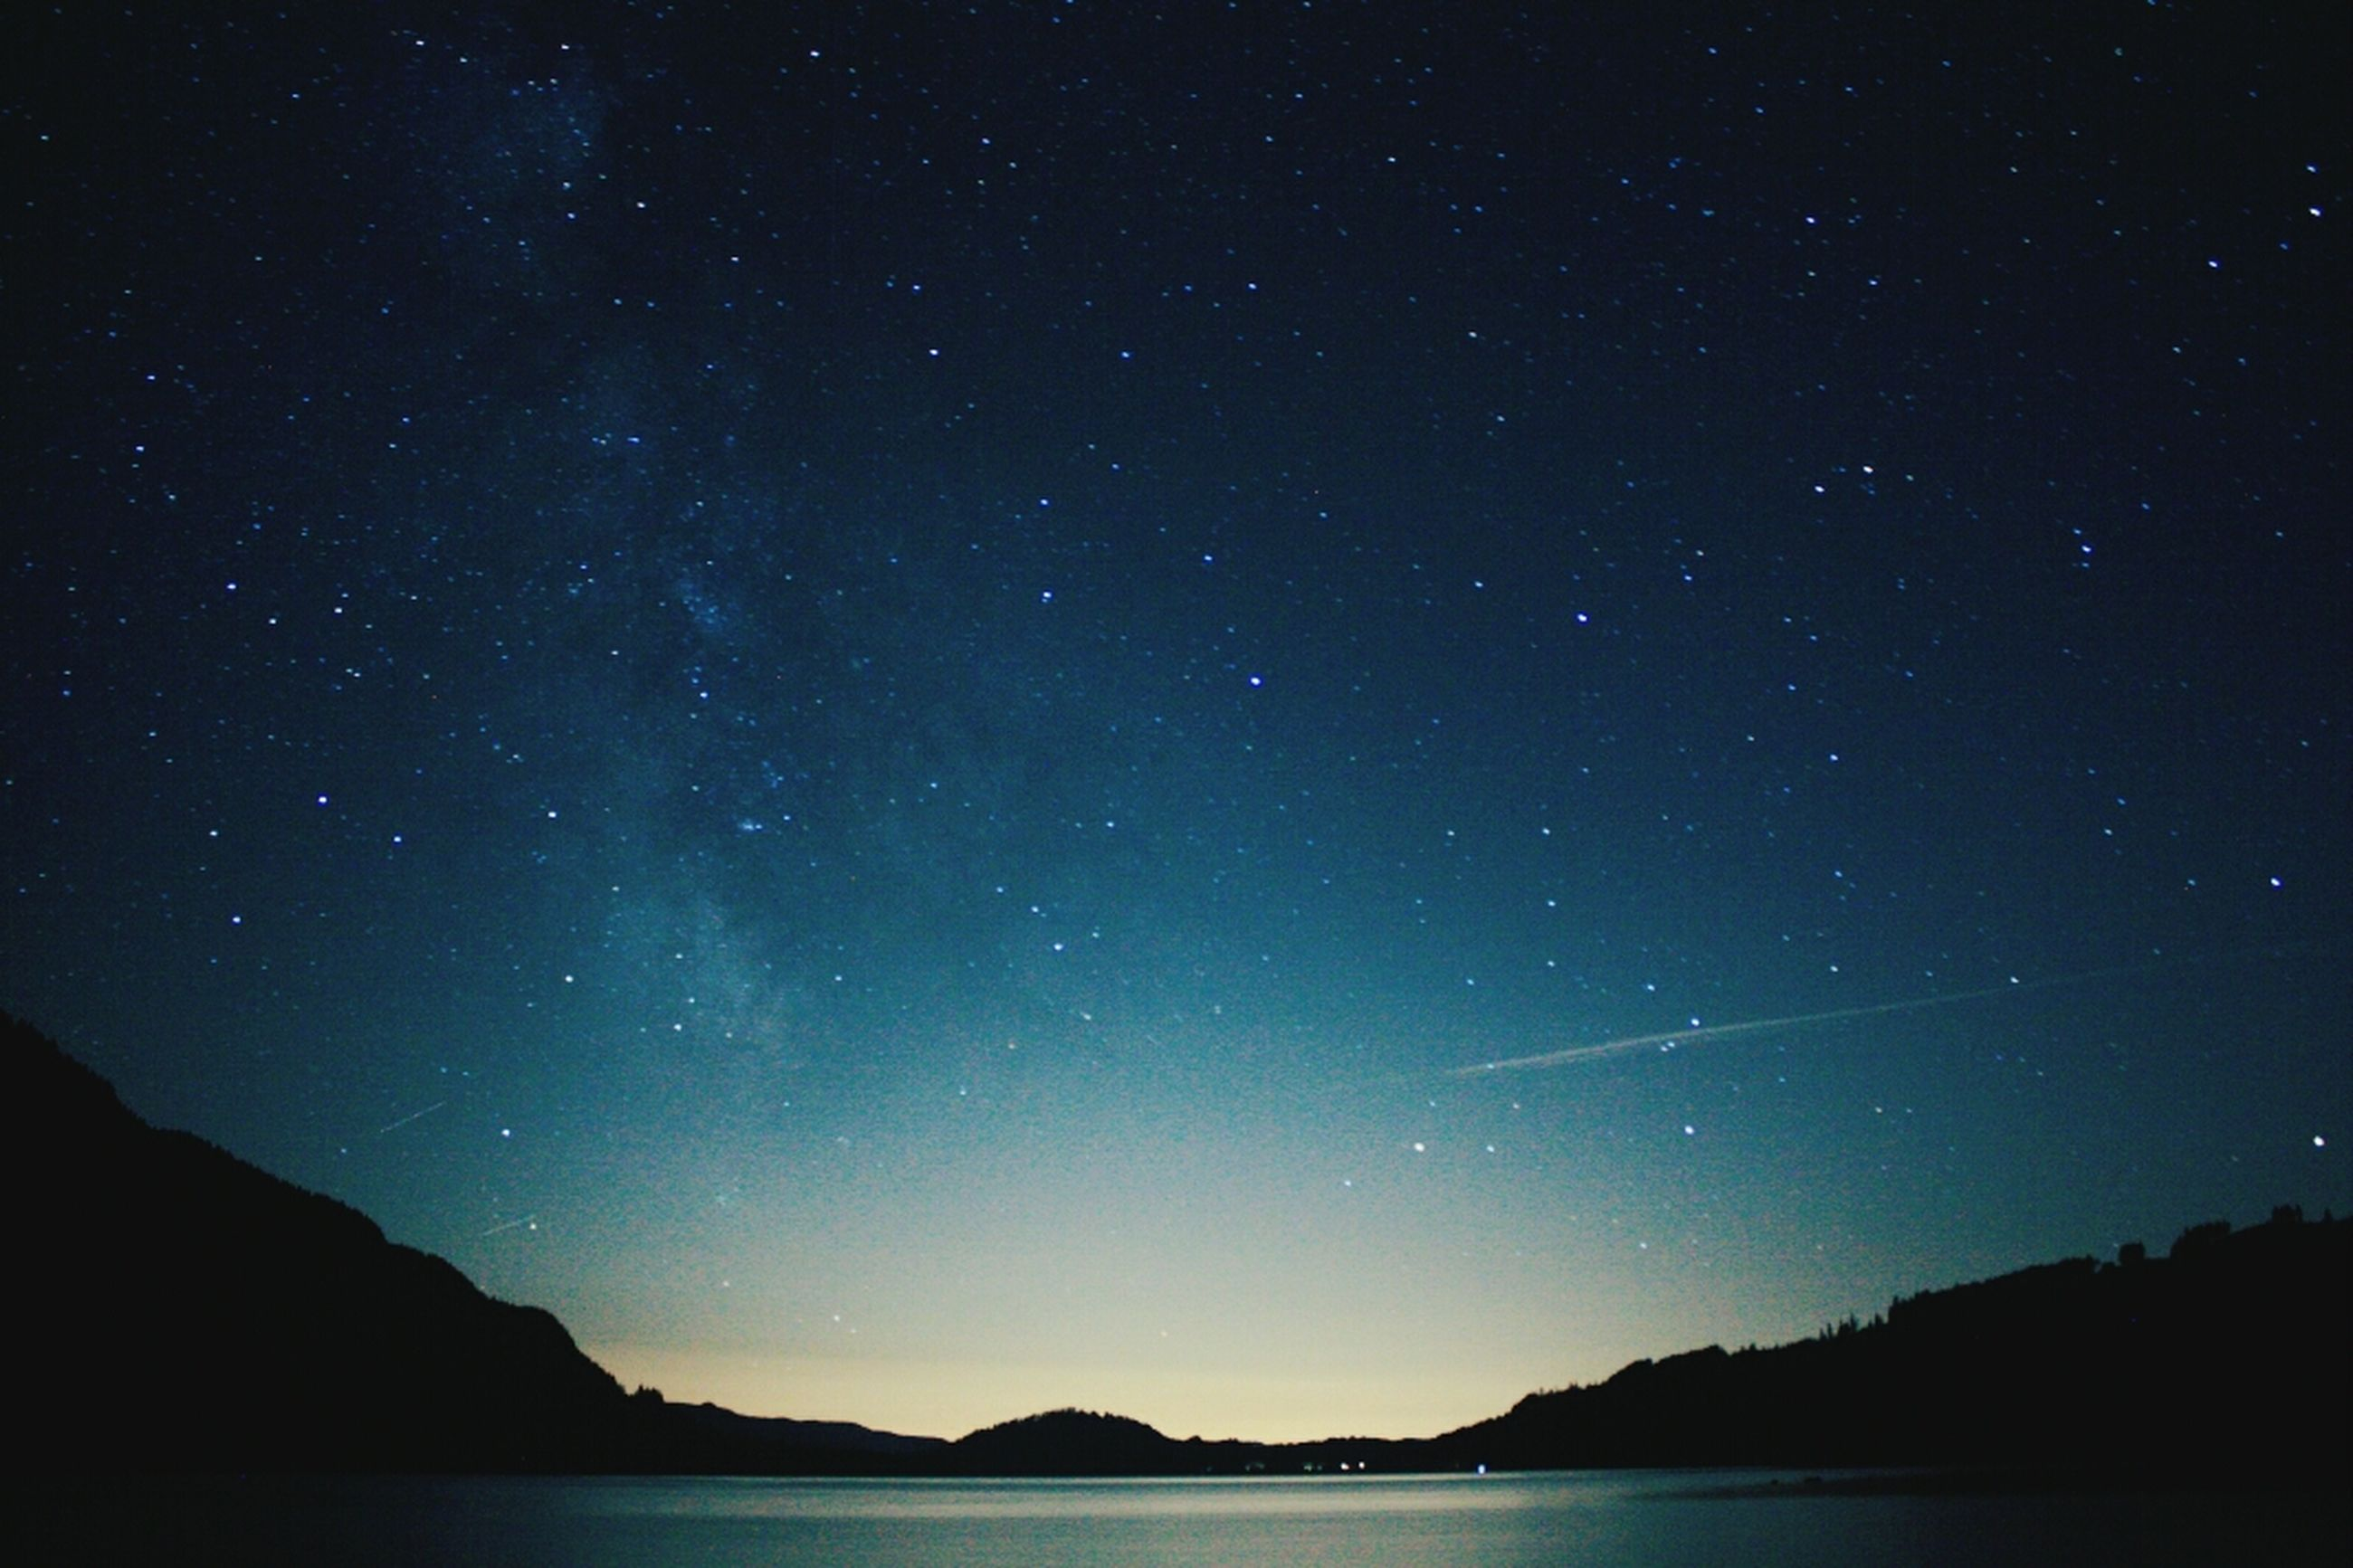 night, scenics, tranquil scene, star - space, beauty in nature, tranquility, star field, astronomy, water, sky, nature, idyllic, galaxy, waterfront, star, silhouette, majestic, space, mountain, lake